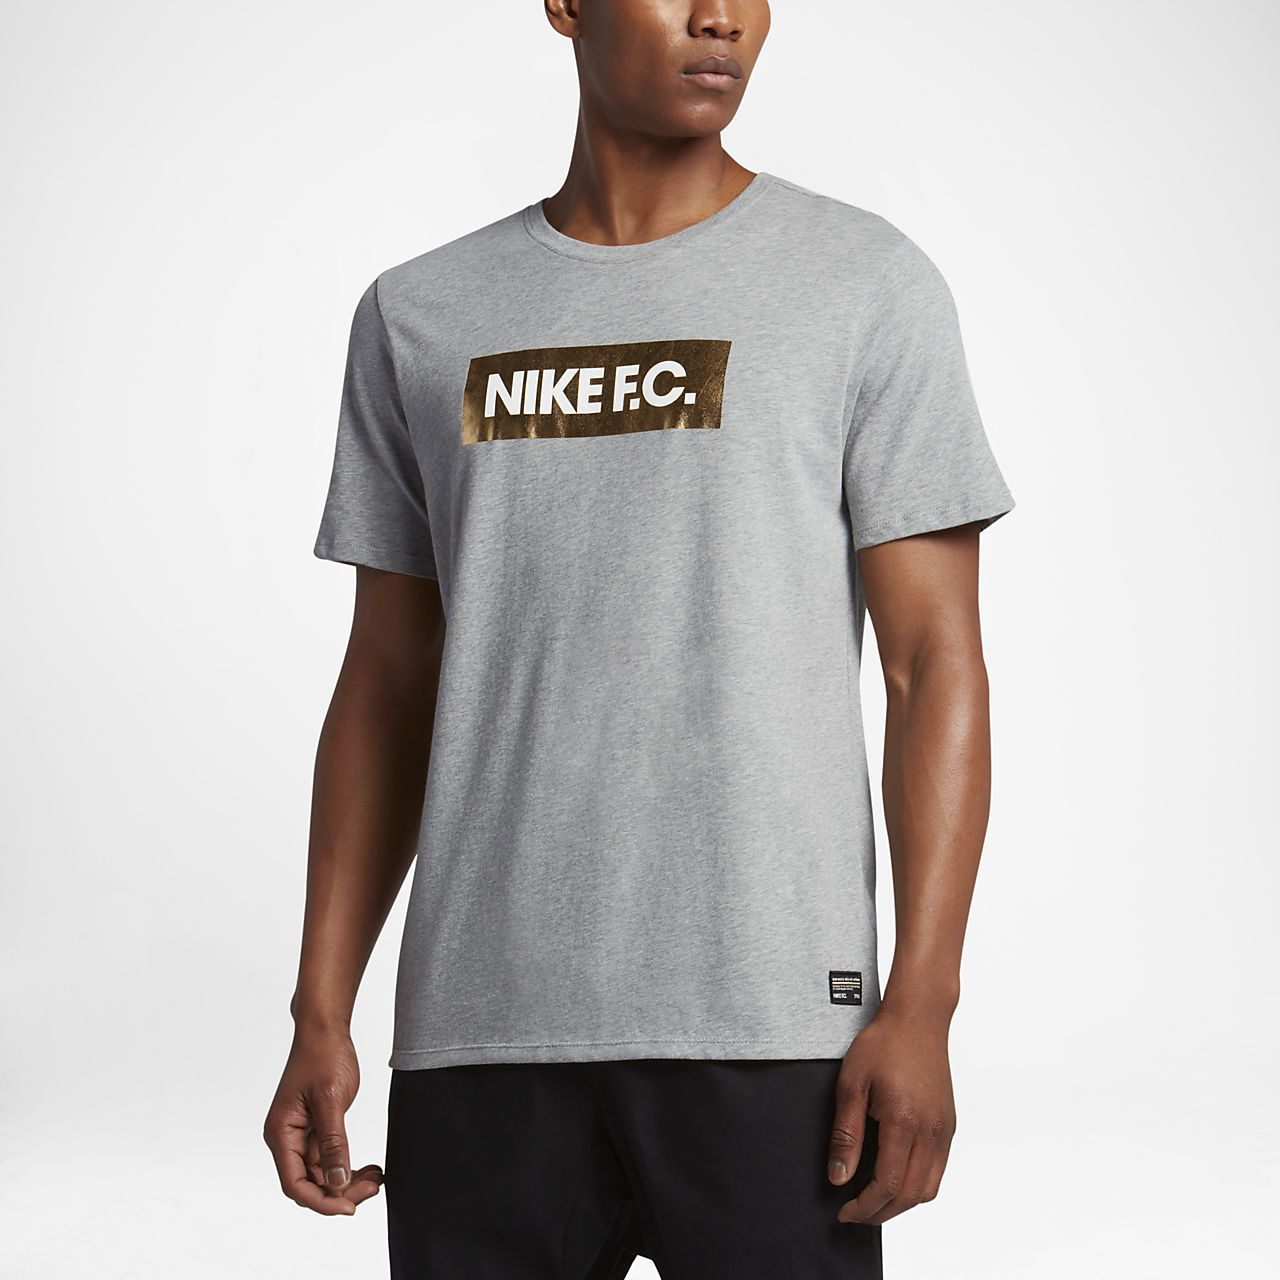 5f3d937be4c9 Nike F.C. Foil Men s T-Shirt. Nike.com IN